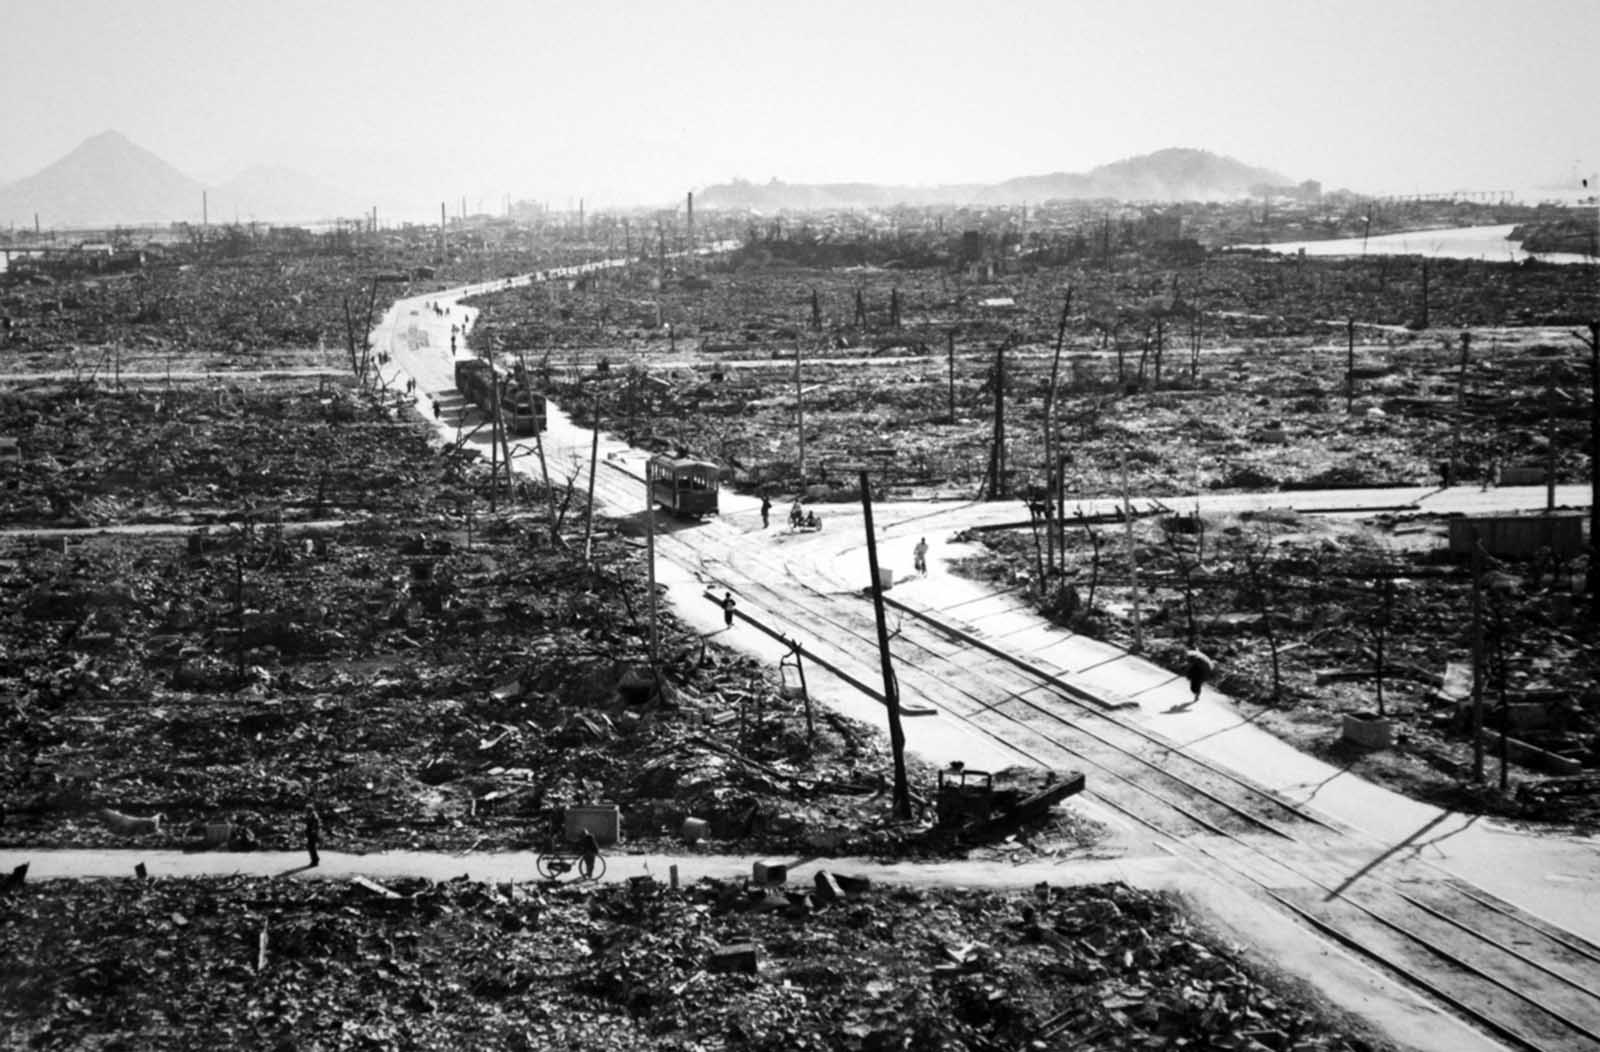 Streetcars, bicyclists, and pedestrians make their way through the wreckage of Hiroshima.